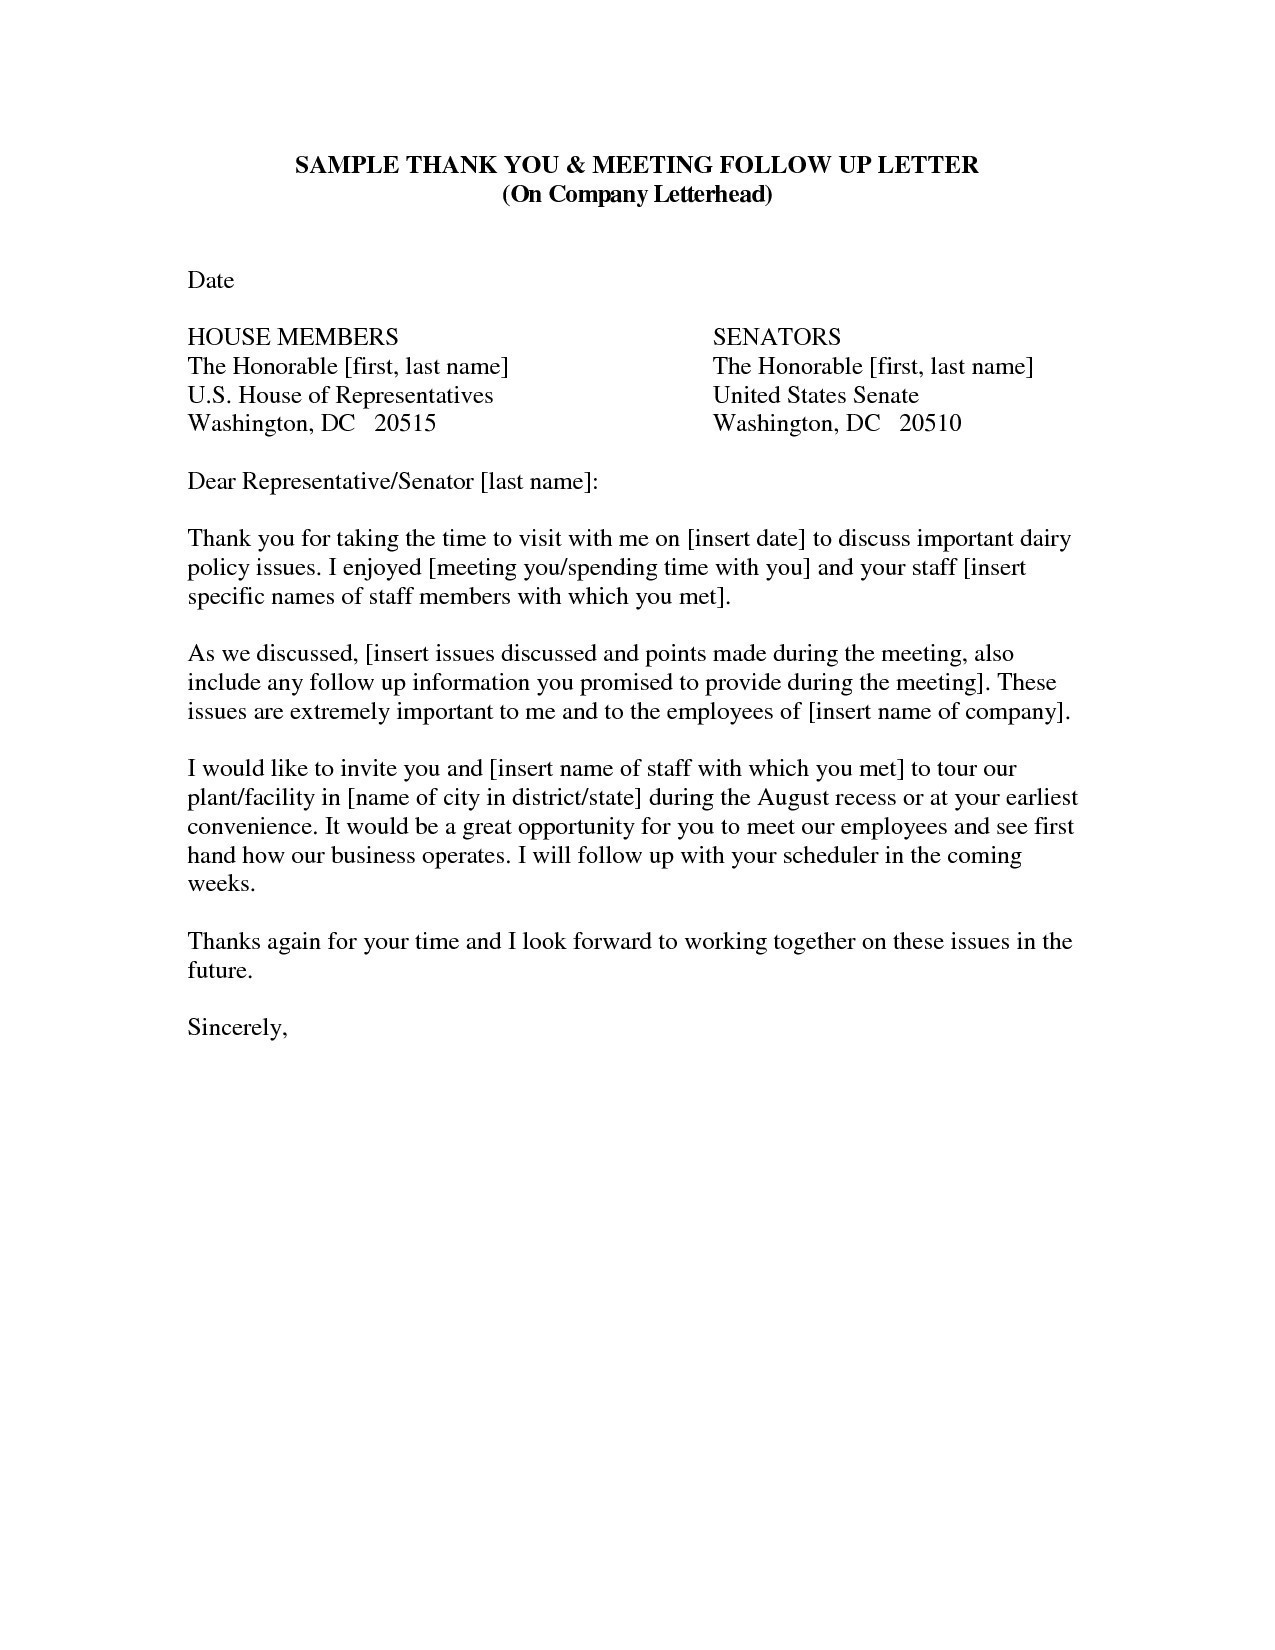 Letter to Senator Template - Thank You Letter format for Business New Template Letter for